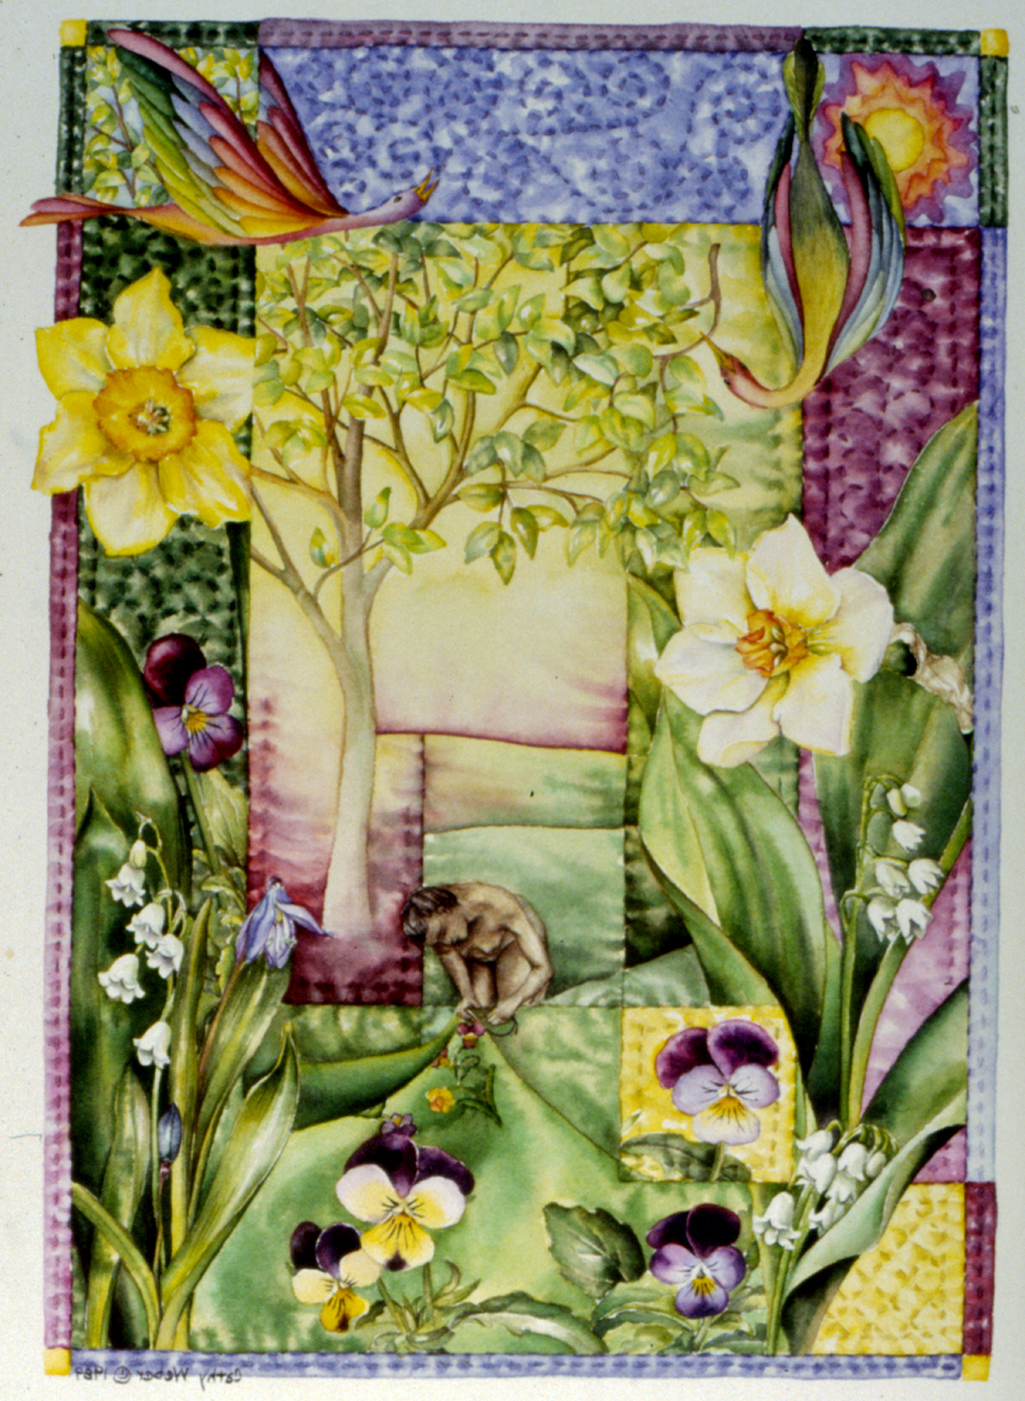 cathy weber - art - holy card - holycard - quilt - watercolor - forest - woman - flower - stitcher - stitch - montana